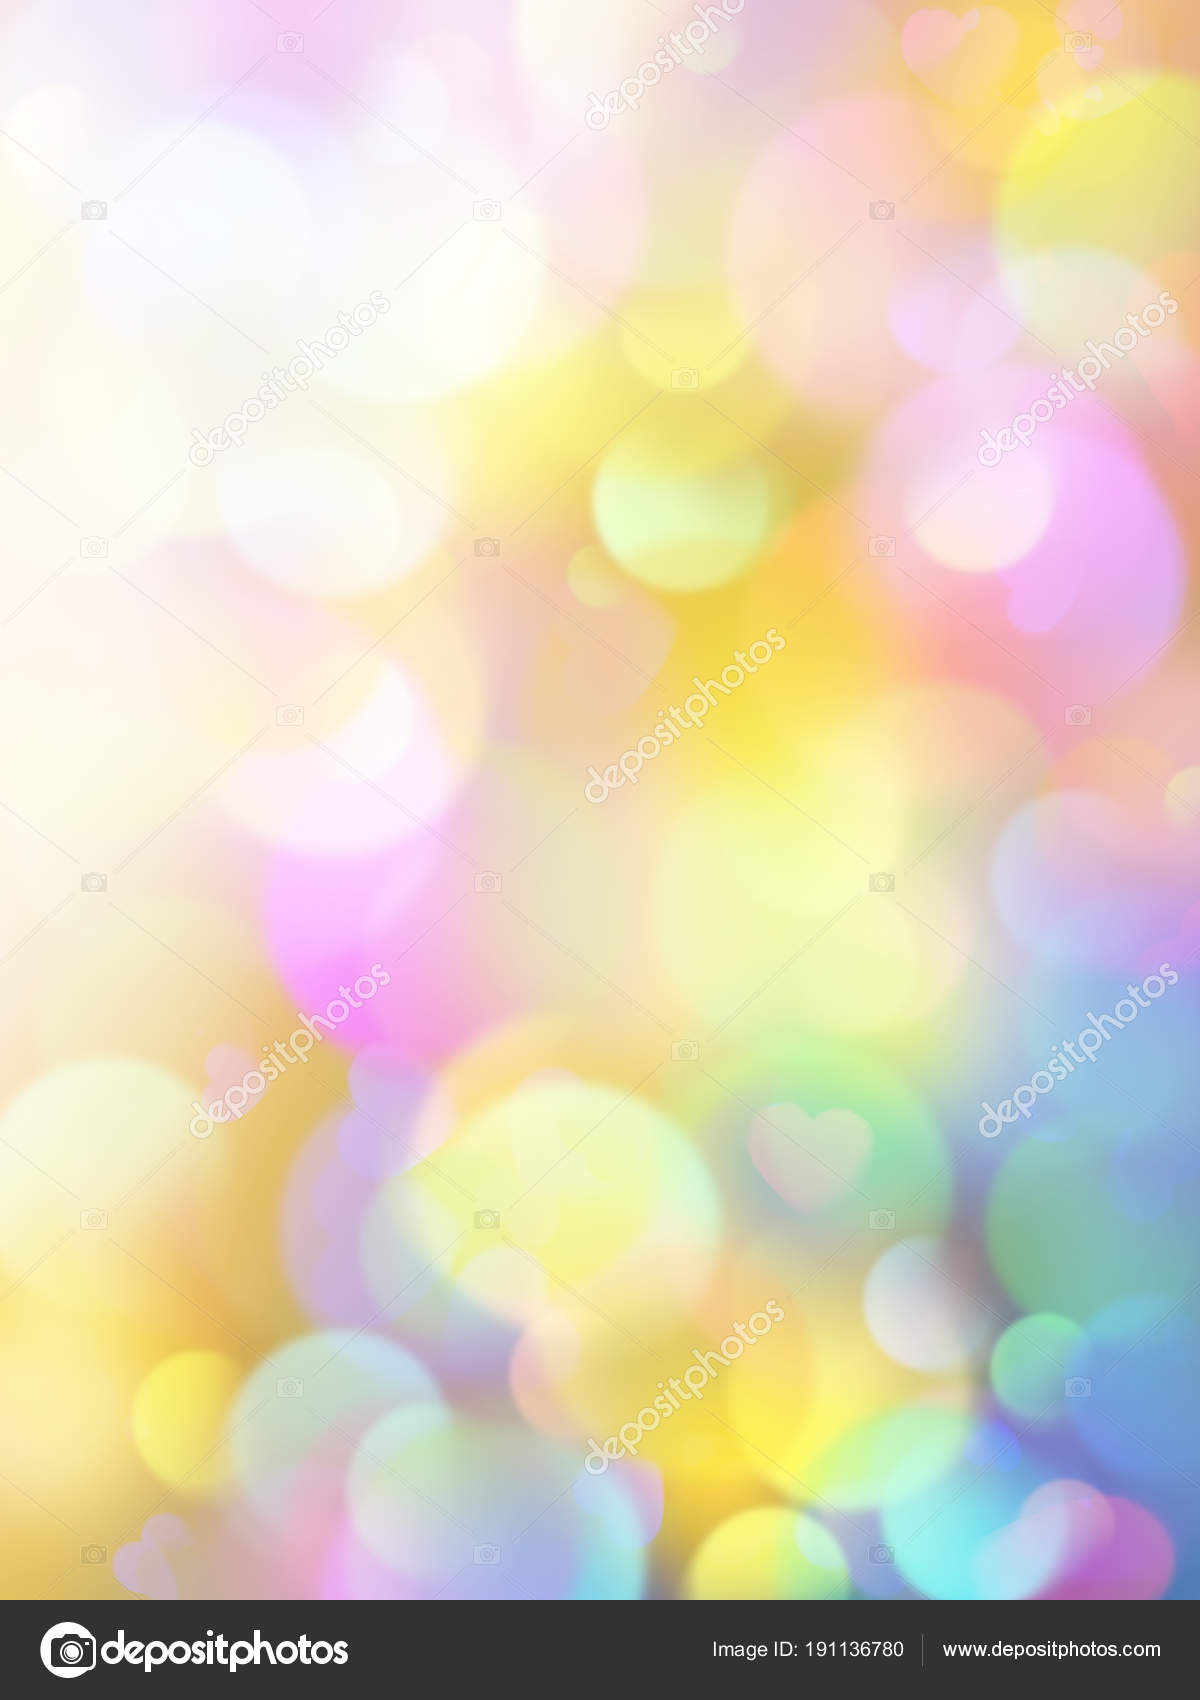 abstract bokeh lights background, pastel wallpaper, vivid colorful